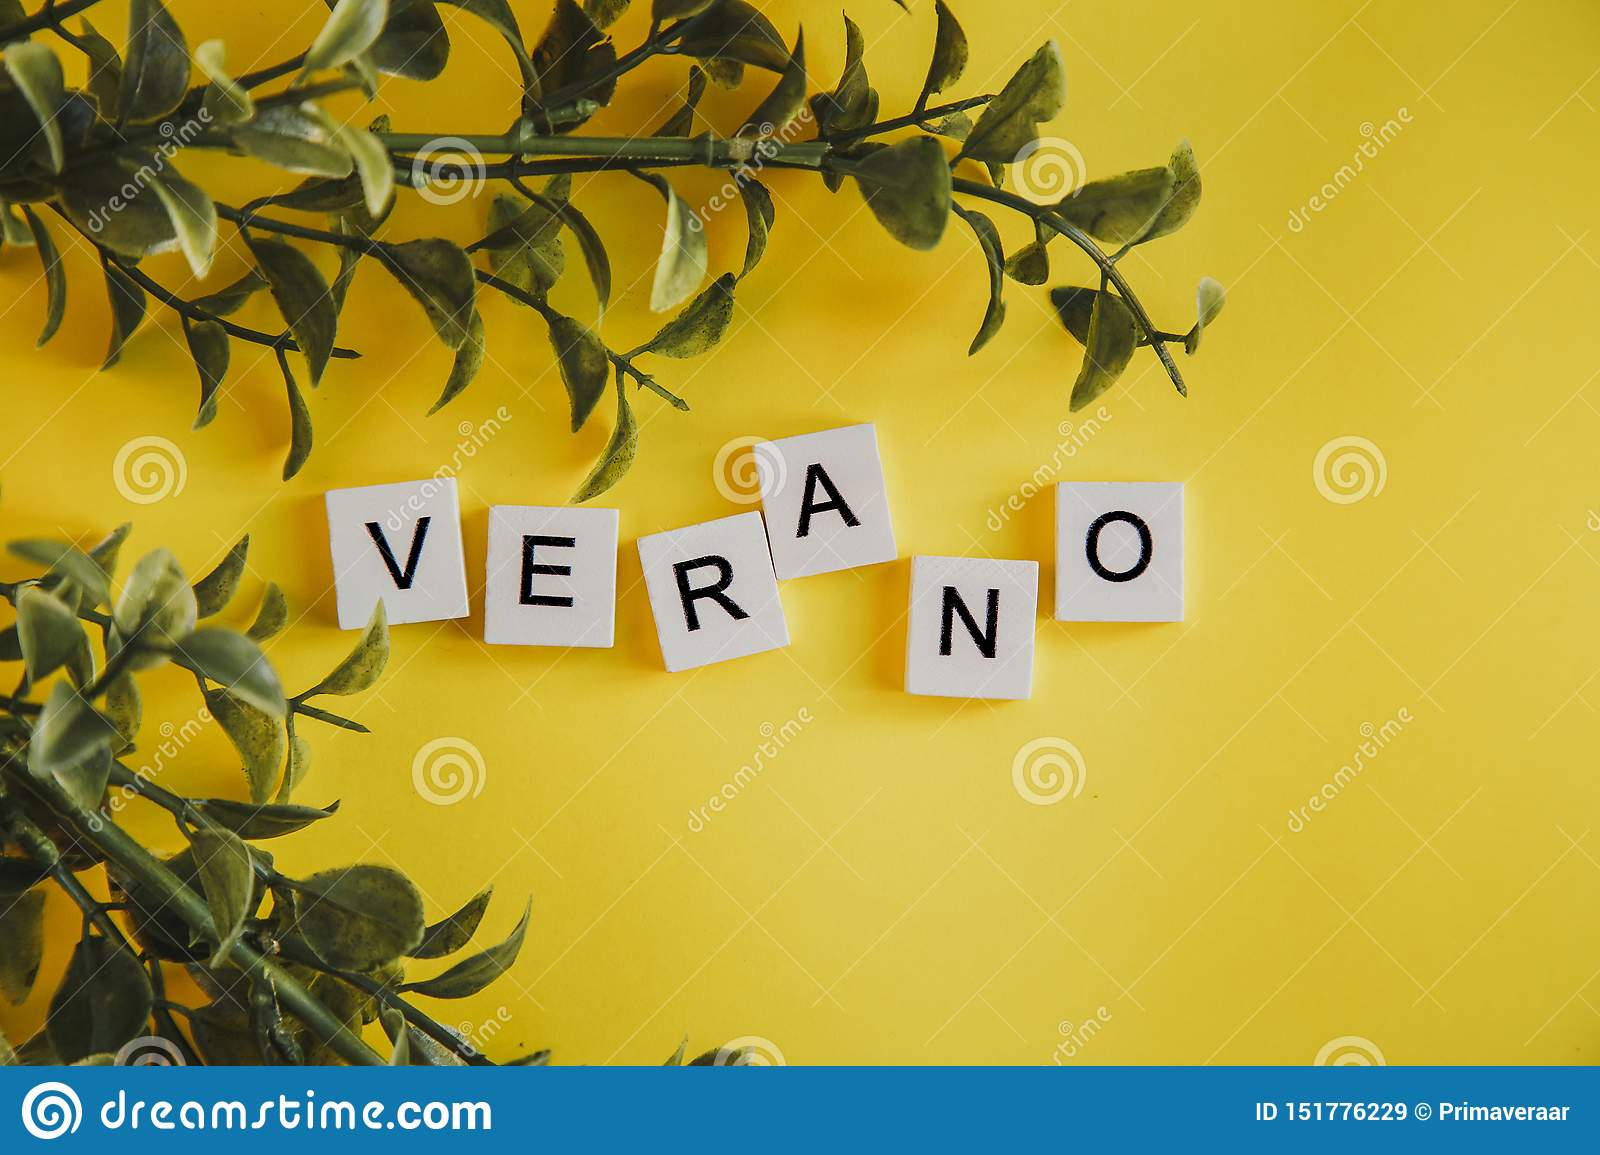 The inscription verano in spanish on the letters of the keyboard on a yellow background with branches of flowers